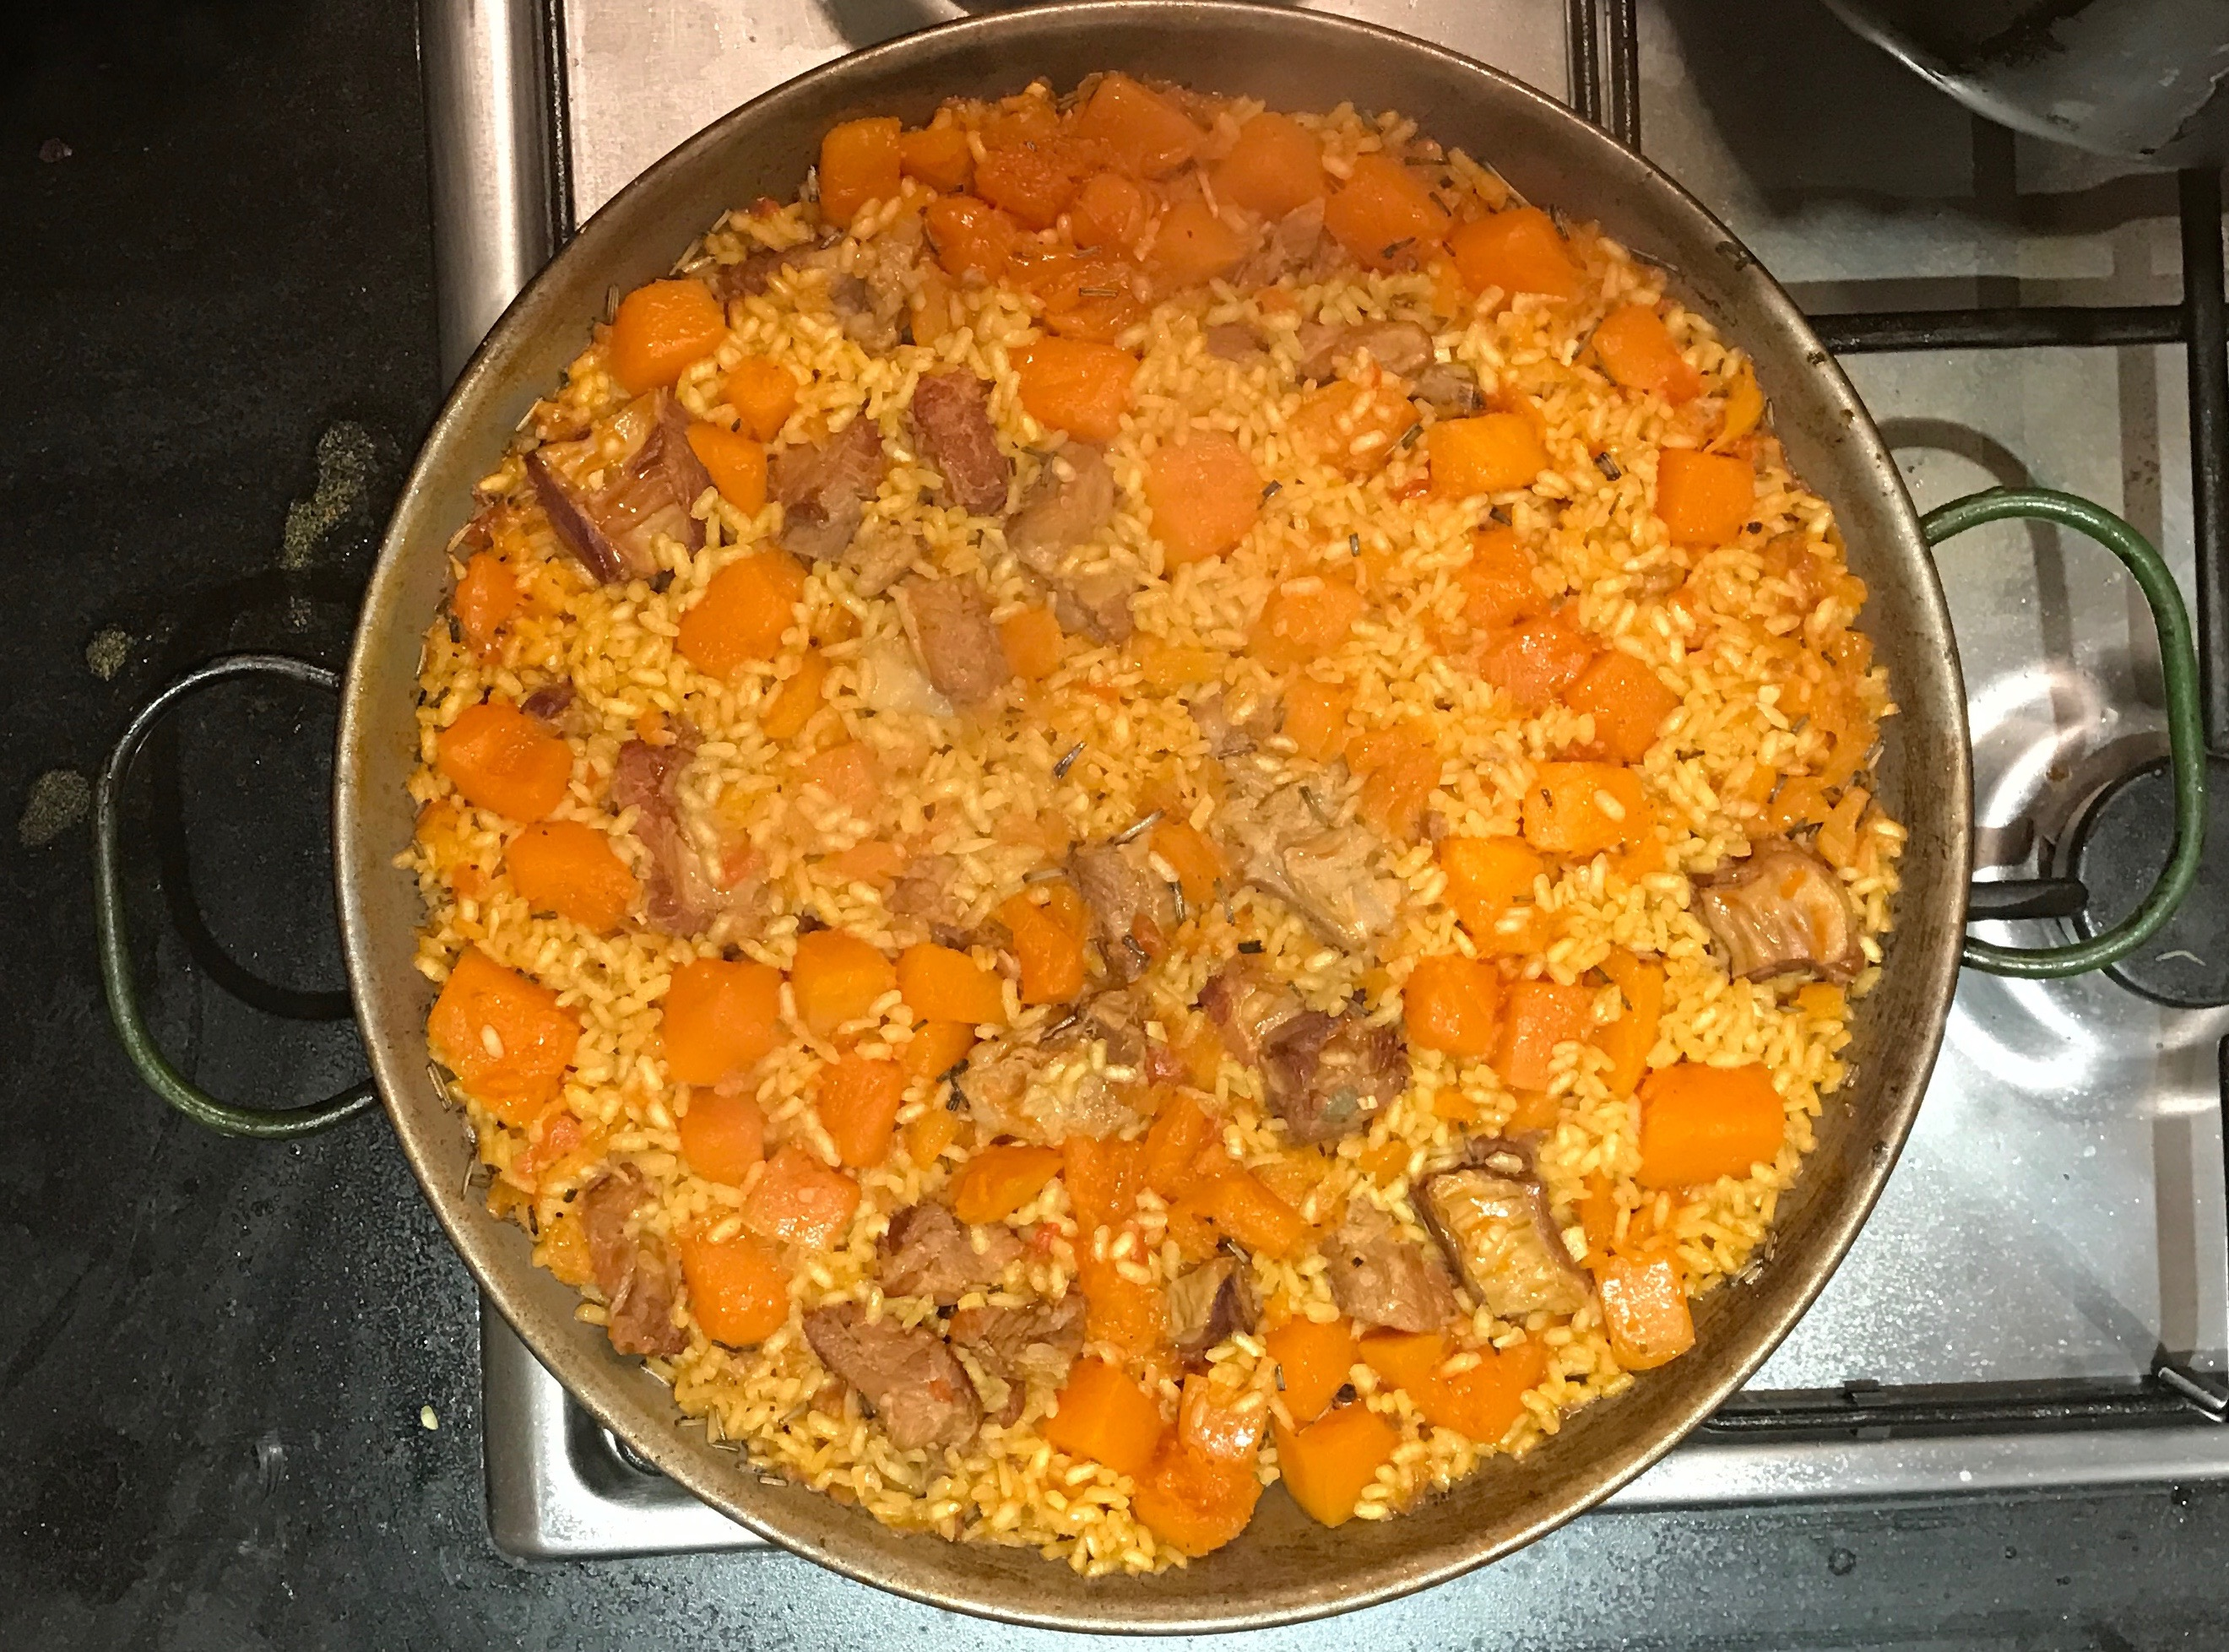 Pork ribs and butternut paella